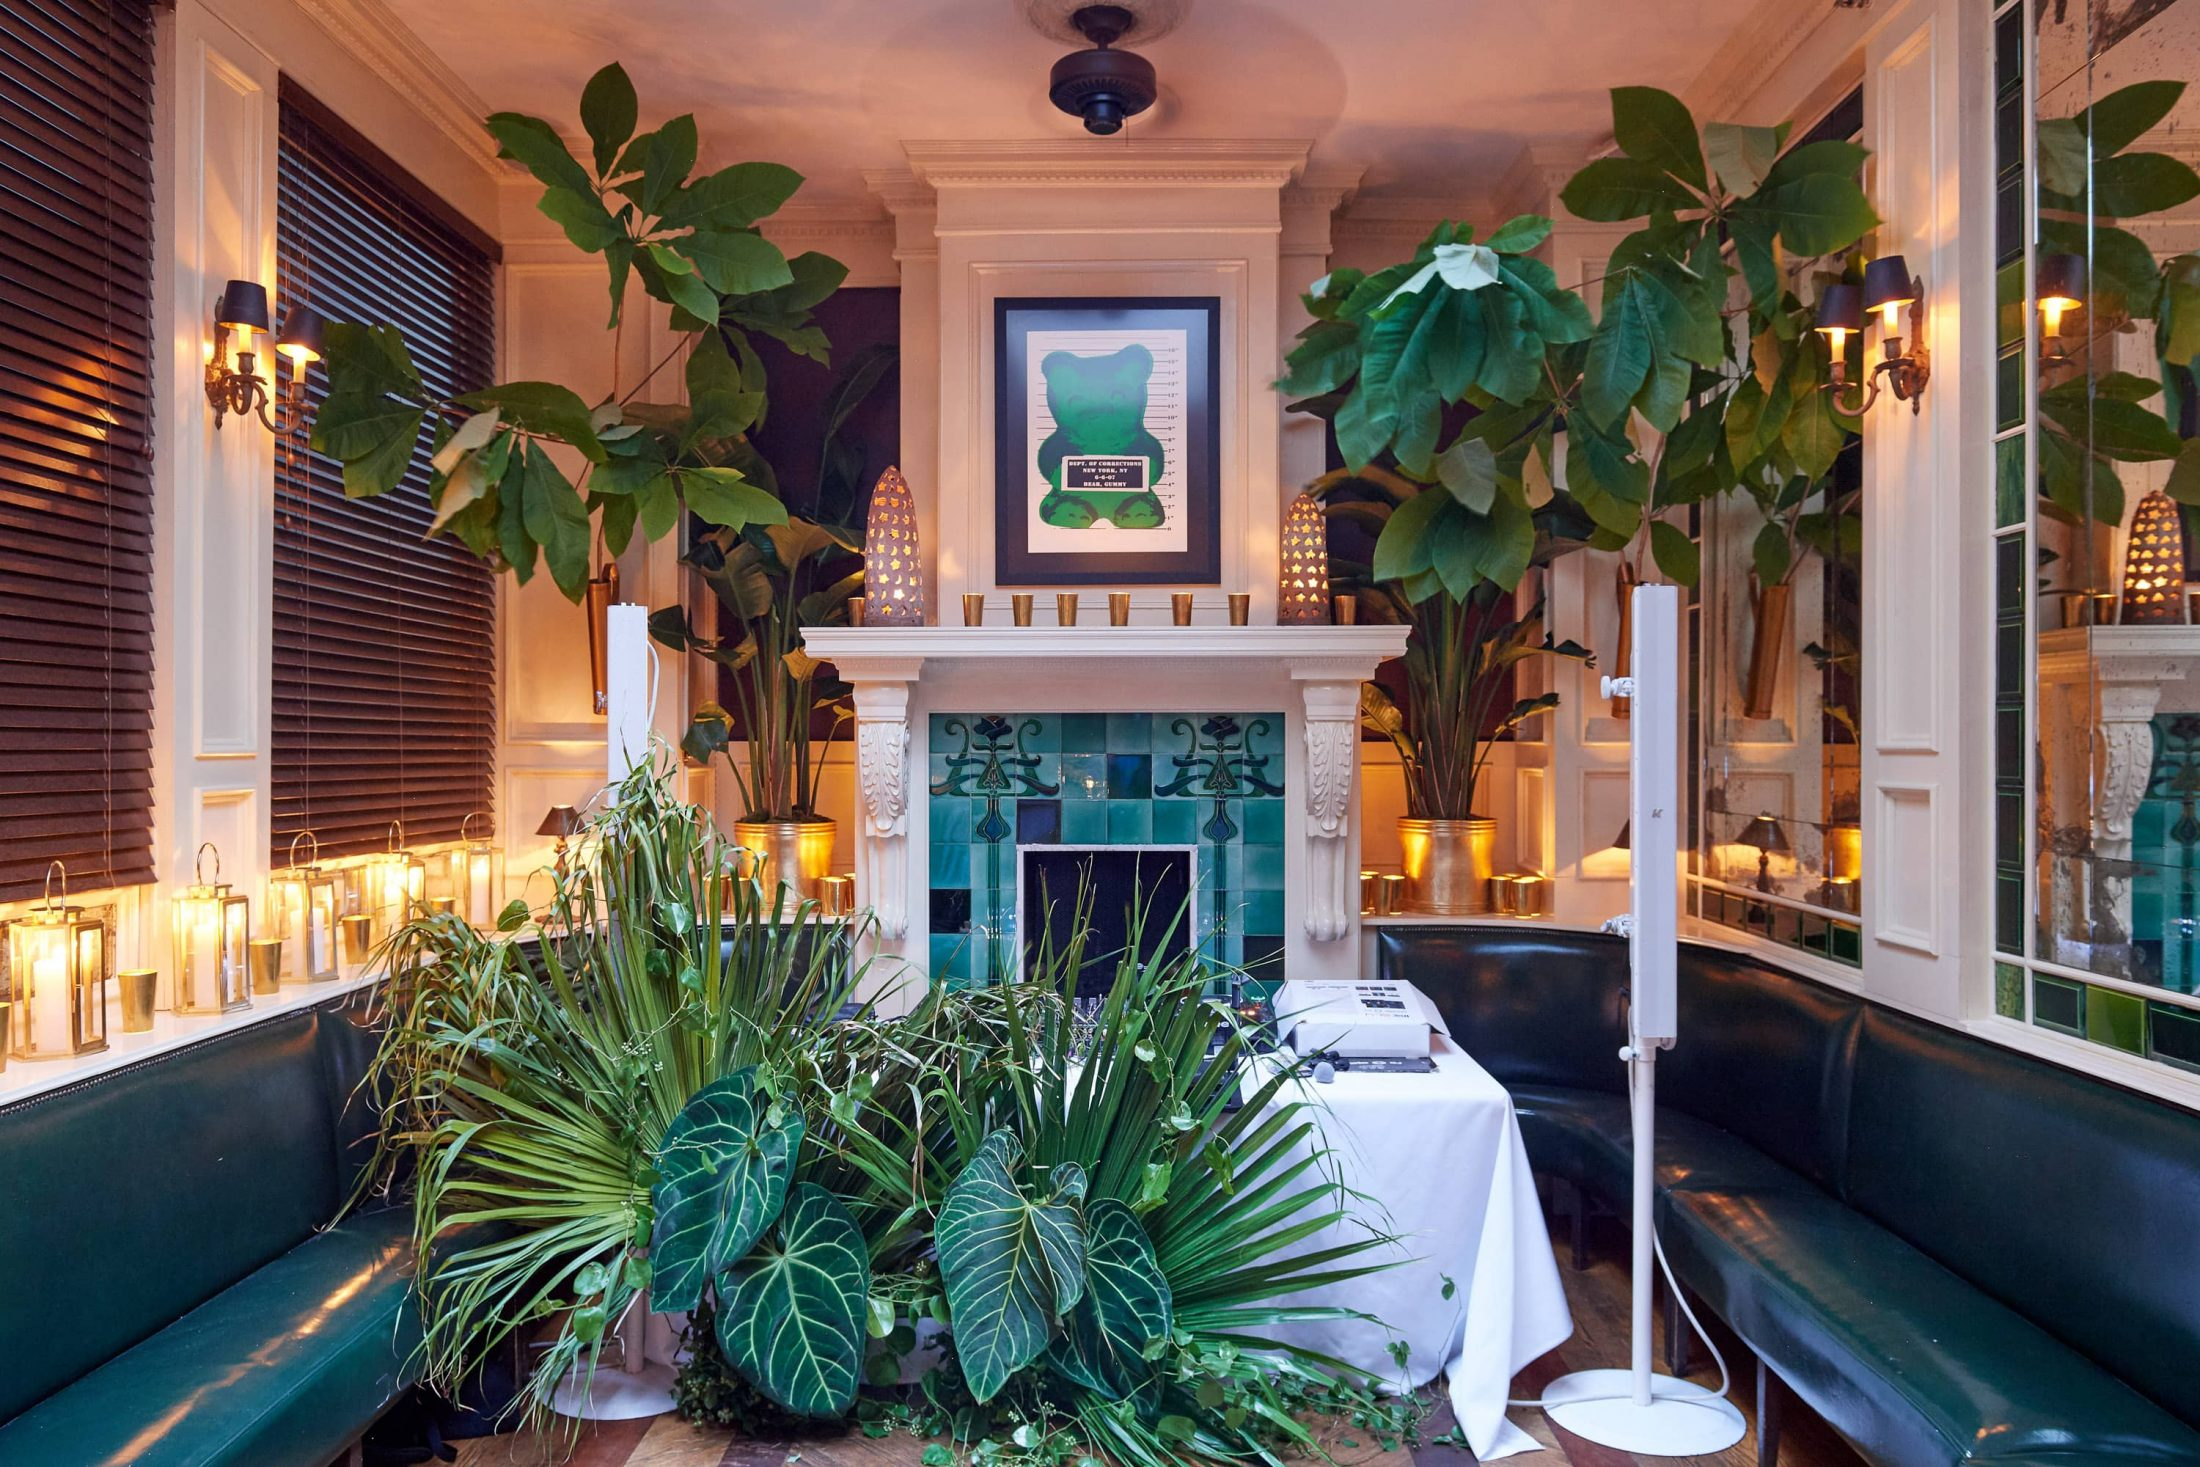 Decor at this 40th surprise birthday party at Beatrice Inn in West Village | Photo by Darren Ornitz